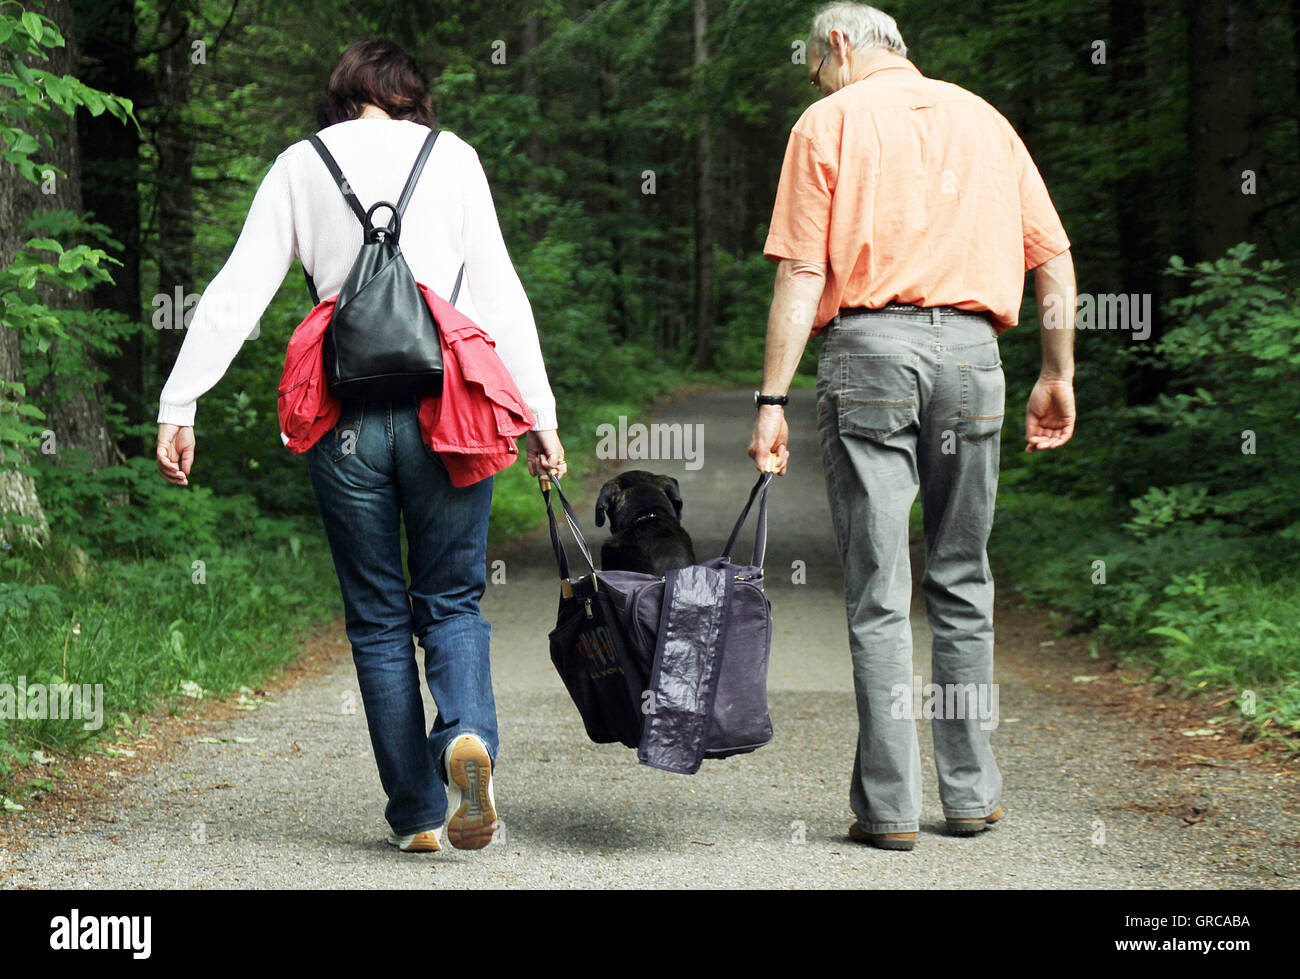 Two Hikers Carry Their Tired And Decrepit Dog In A Bag - Stock Image